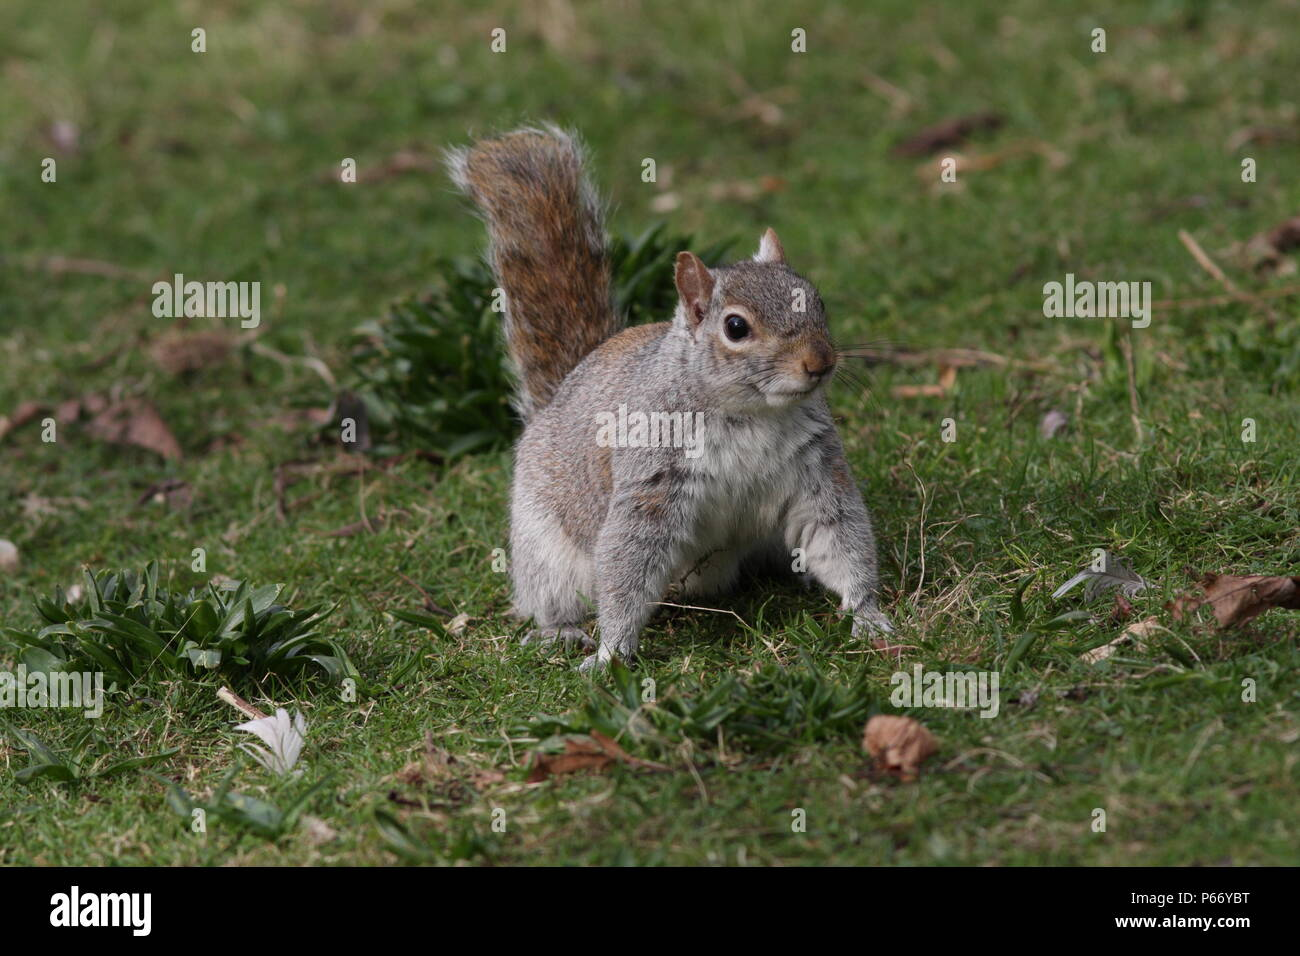 Sciurus carolinensis, grey squirrel, face on standing on grass, a british pest of forestry. - Stock Image